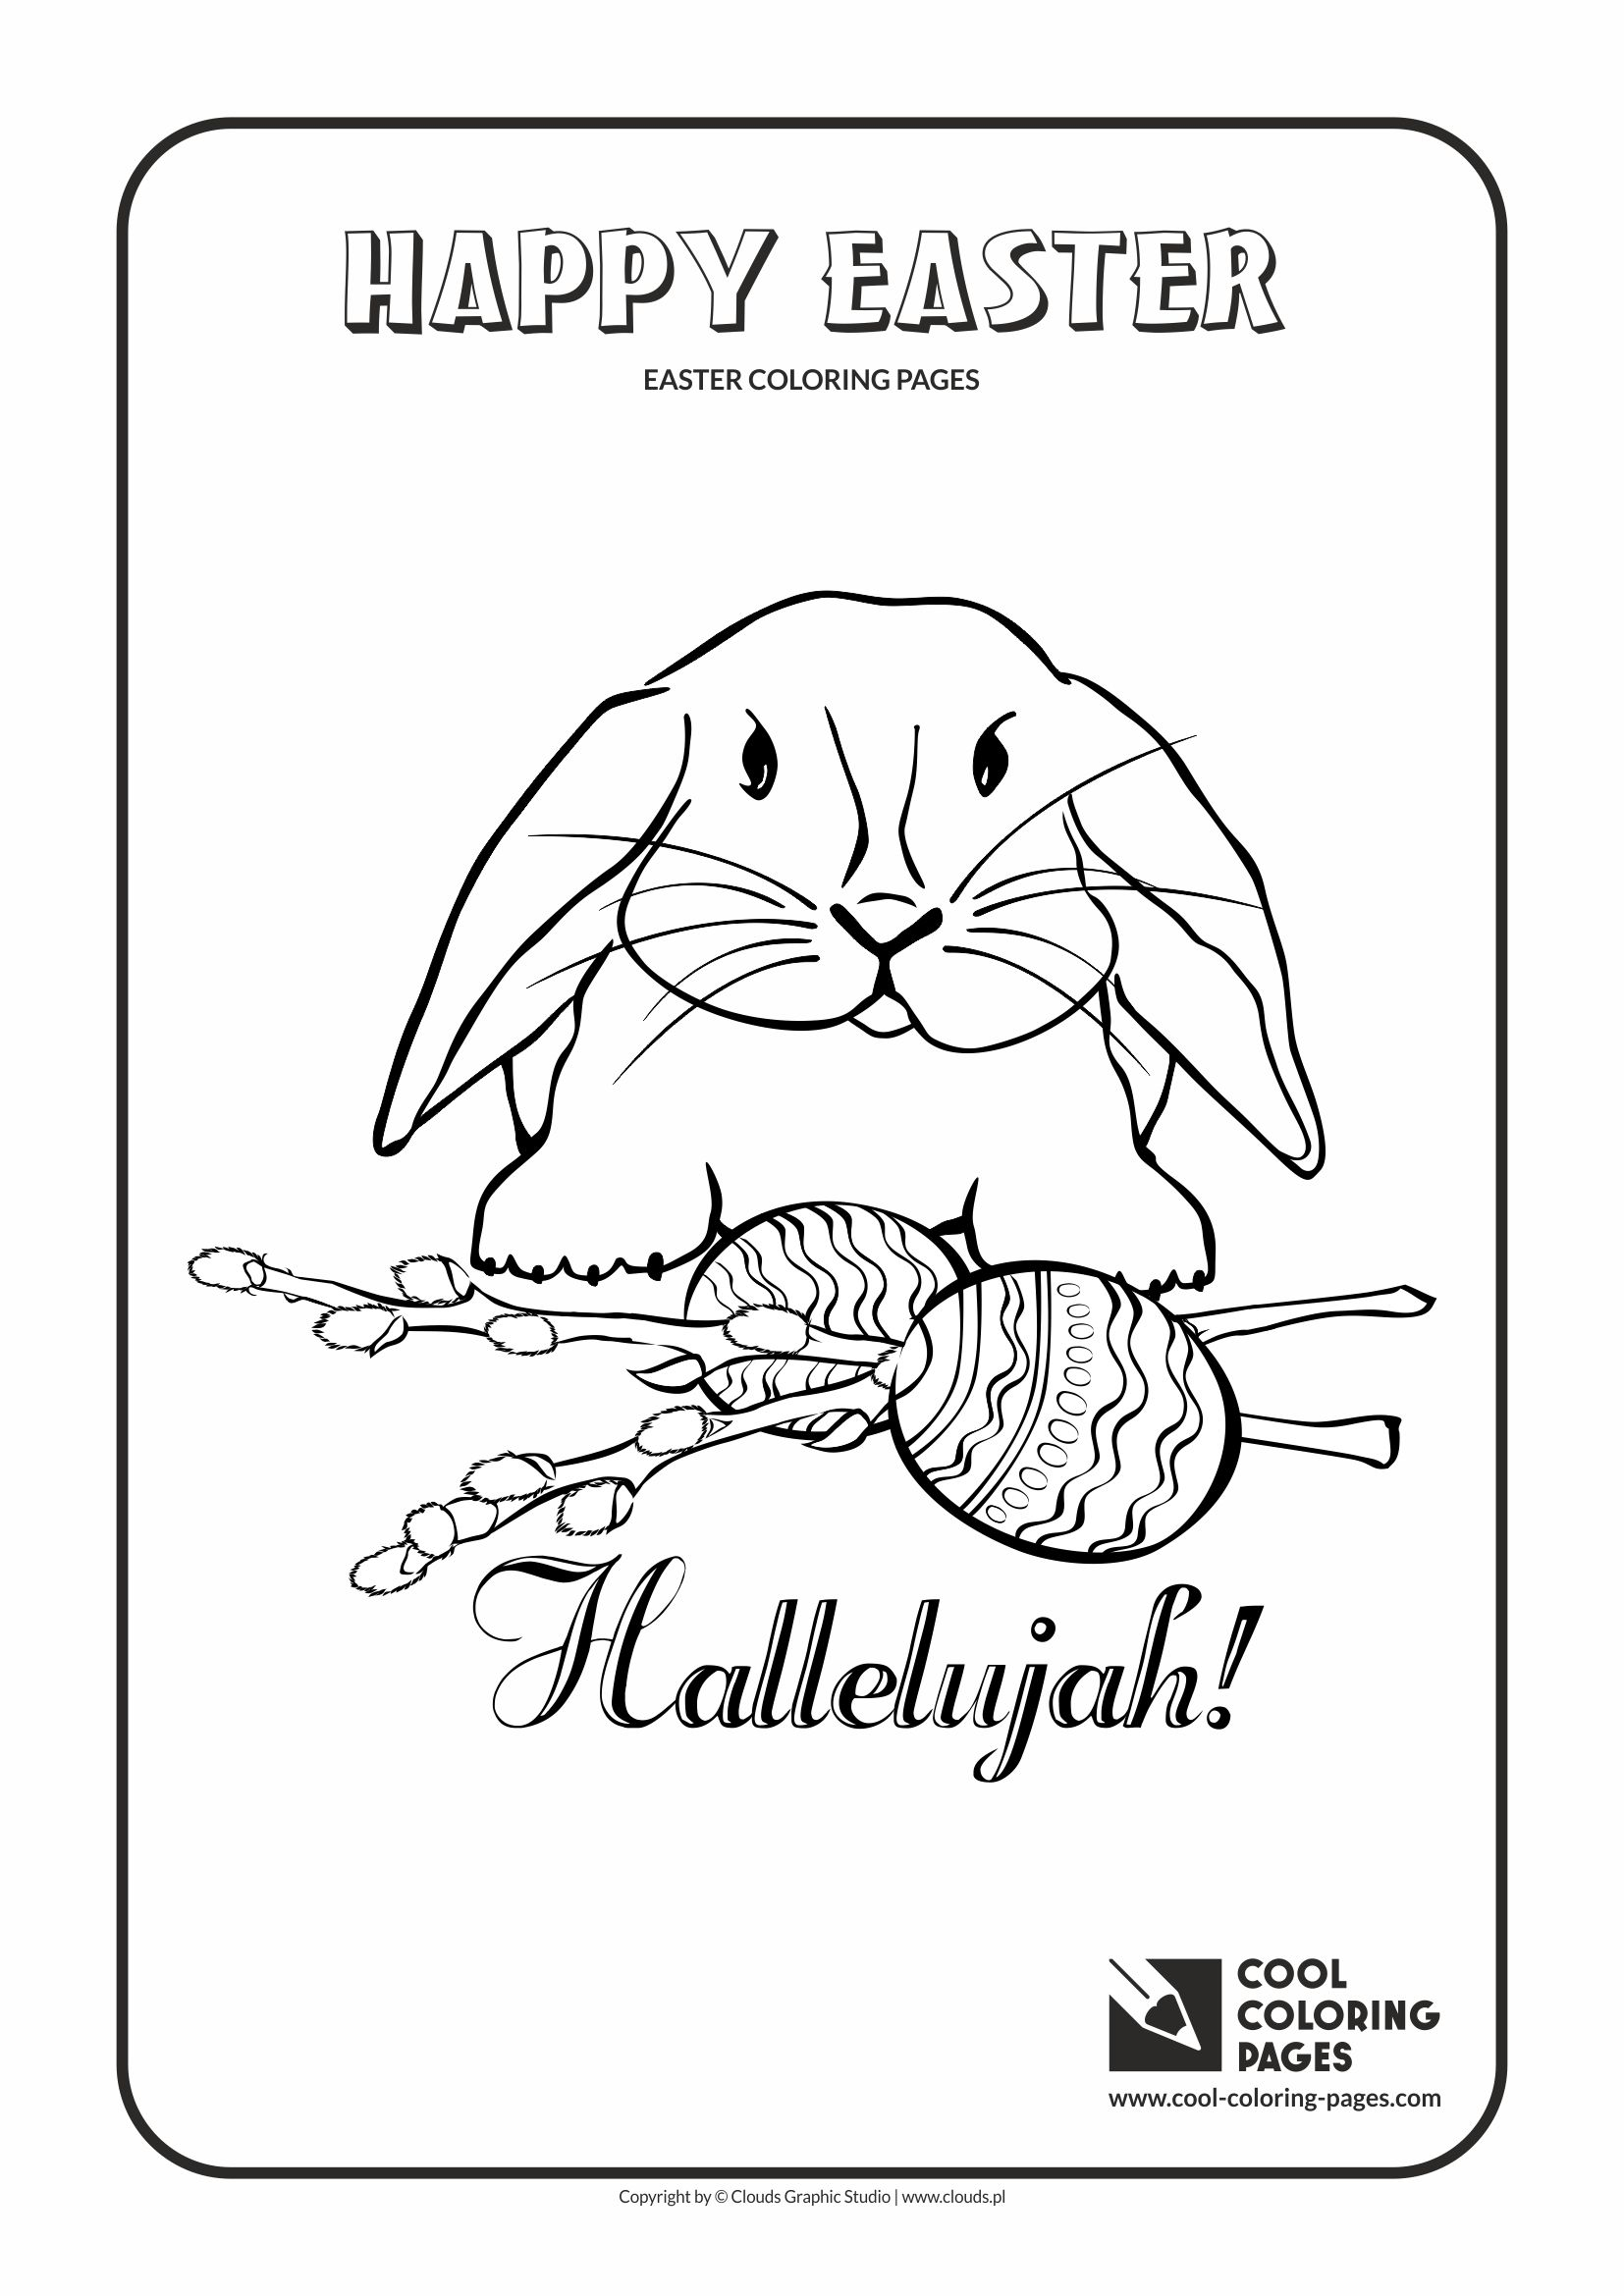 Macedonia additionally Cool Coloring Pages Easter Bunny No together with Mask Clipart Rabbit further Happy Rabbit Coloring Page For Kids X also Bird Maze Difficult. on easter bunny printable coloring pages